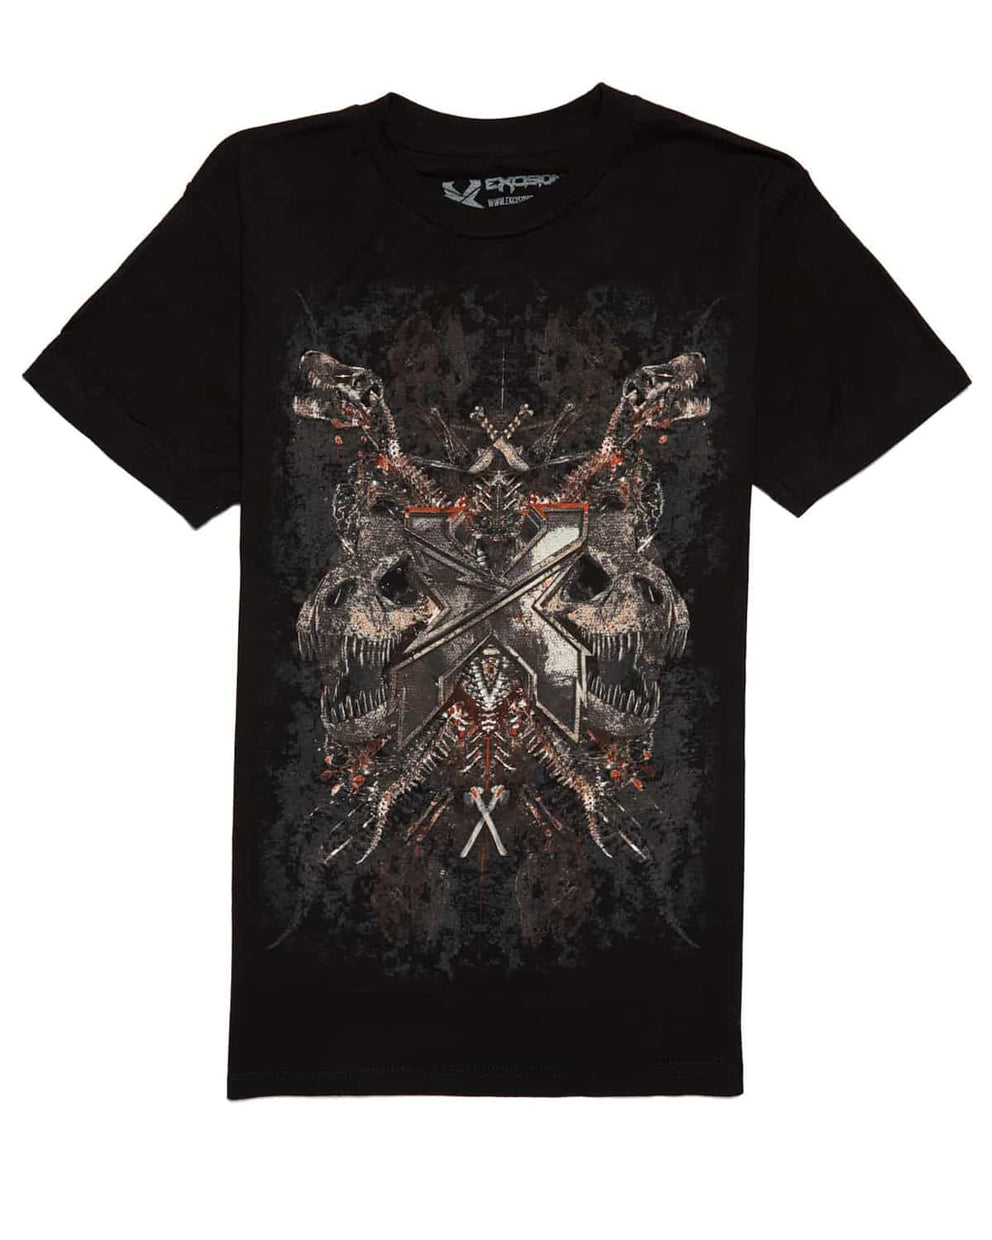 Excision 'Petrified' Unisex T-Shirt - Rust